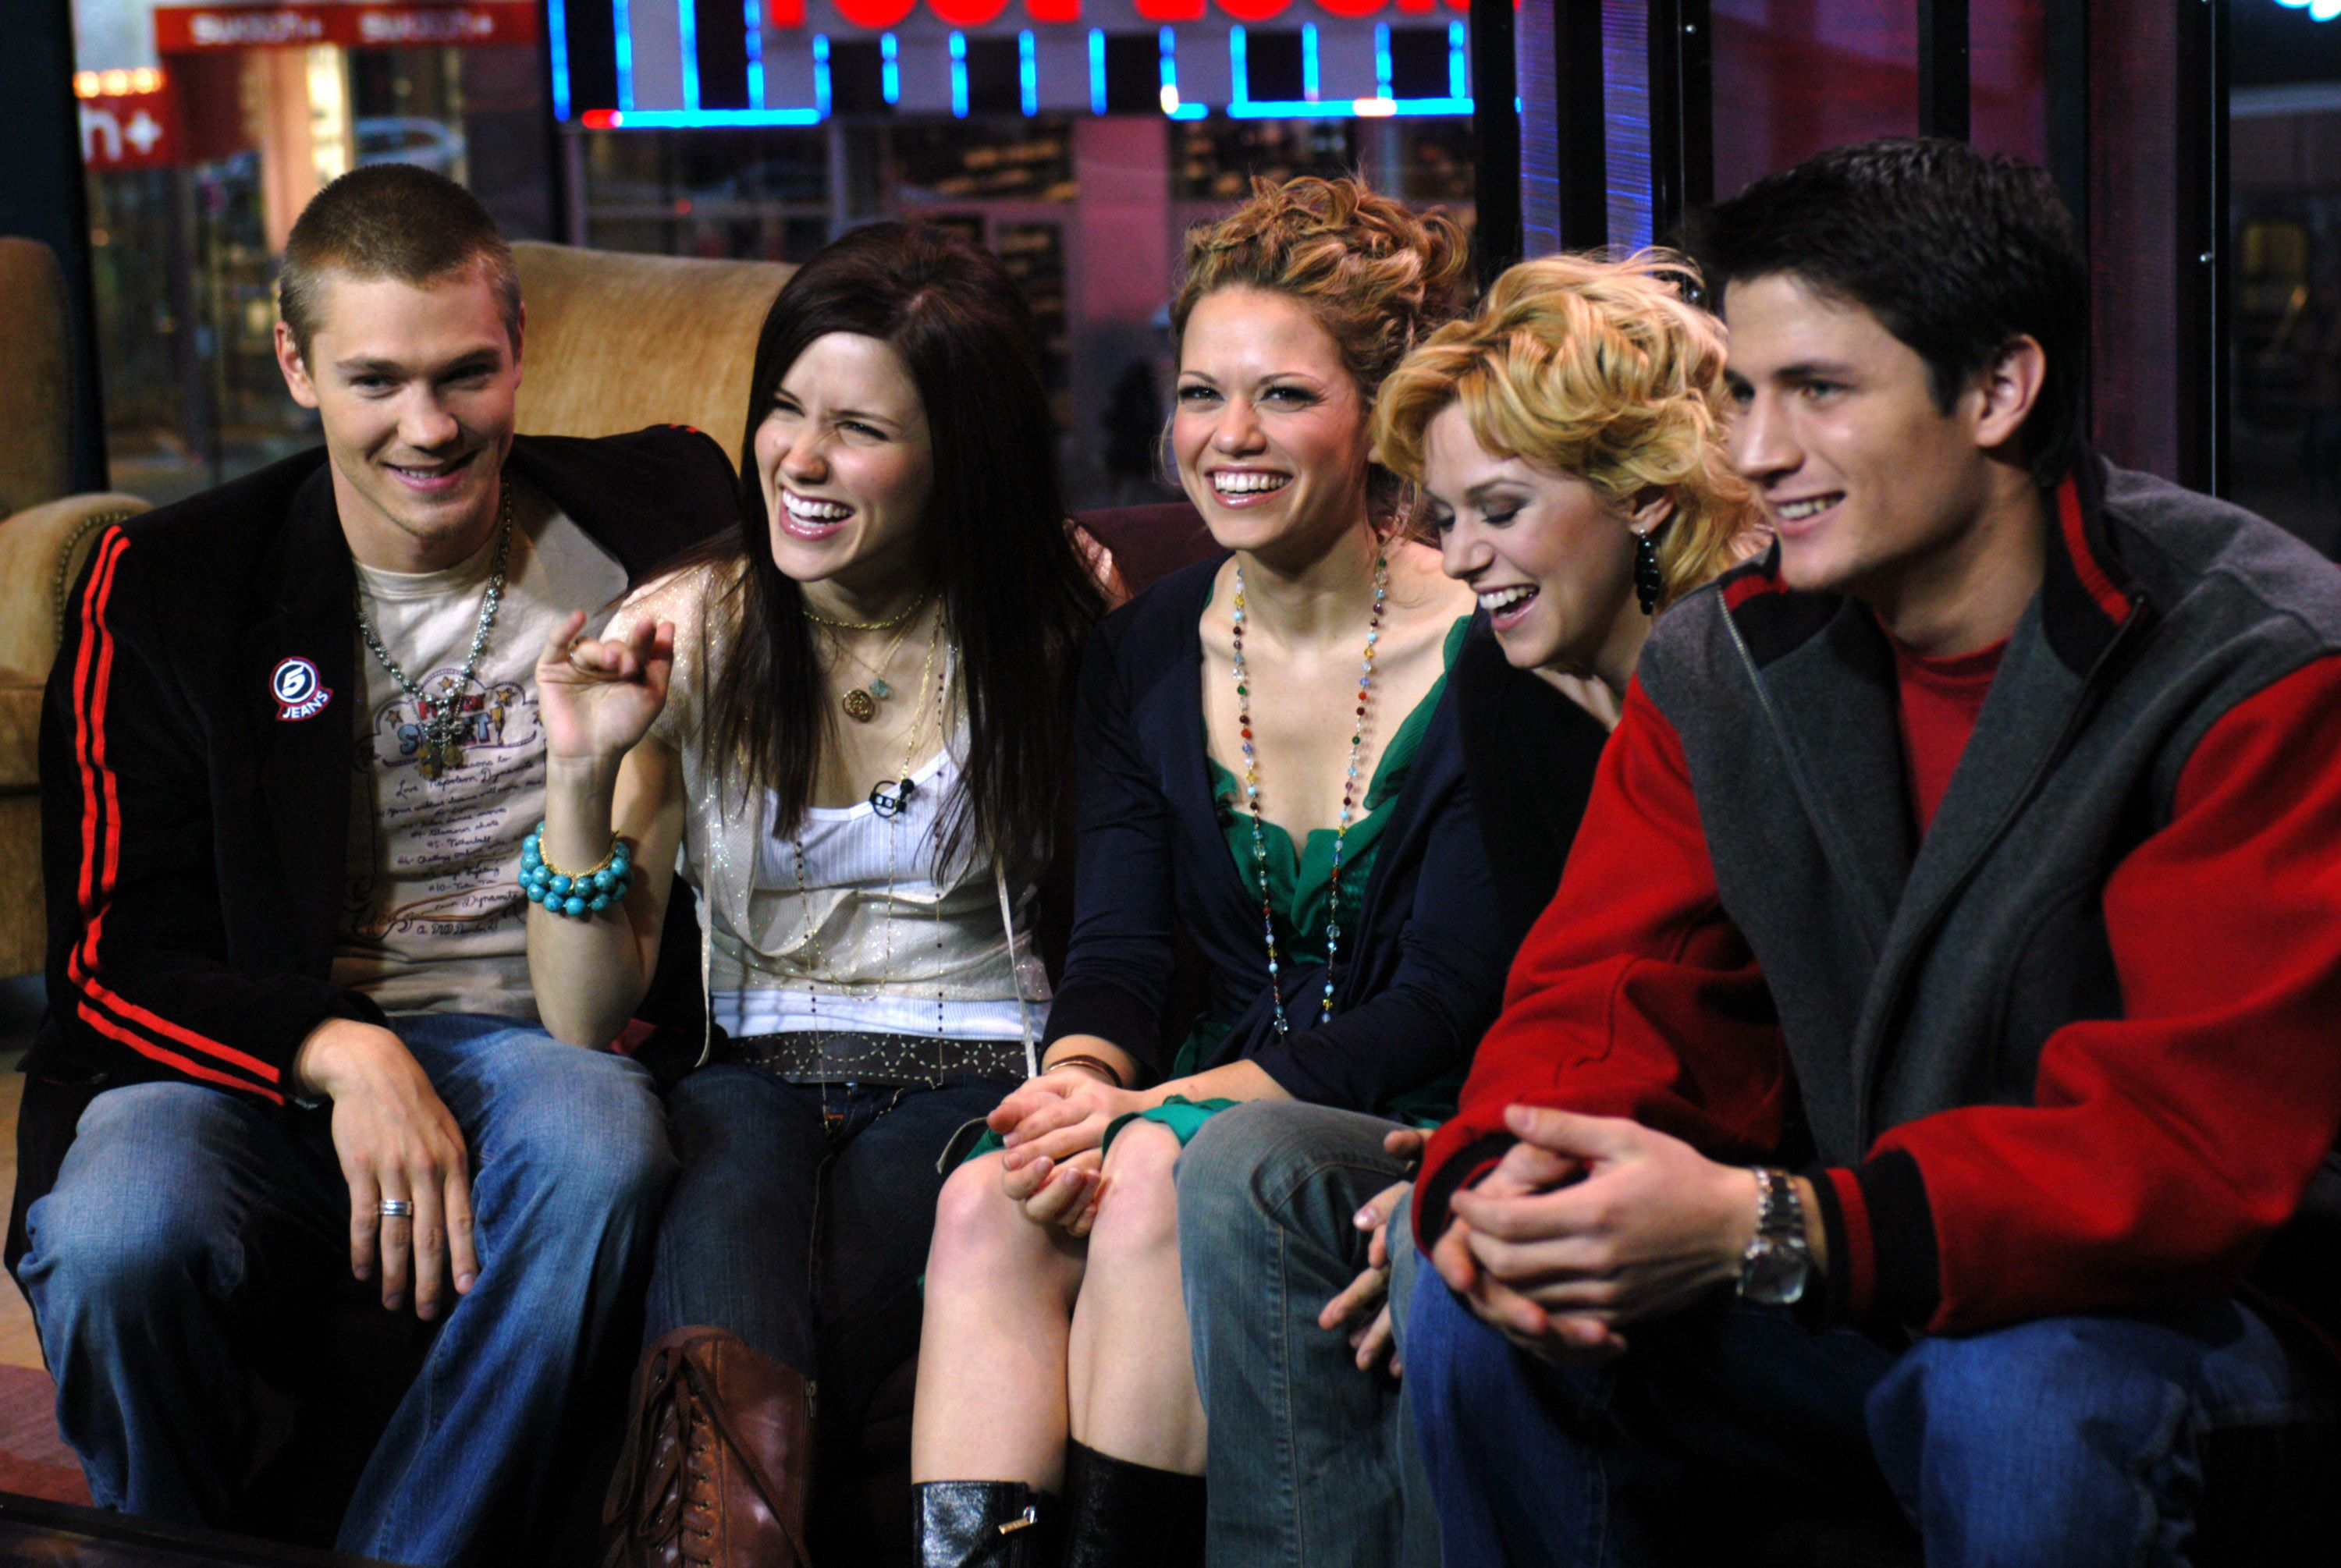 Forget Friends, The One Tree Hill Cast Had An Adorable Reunion At